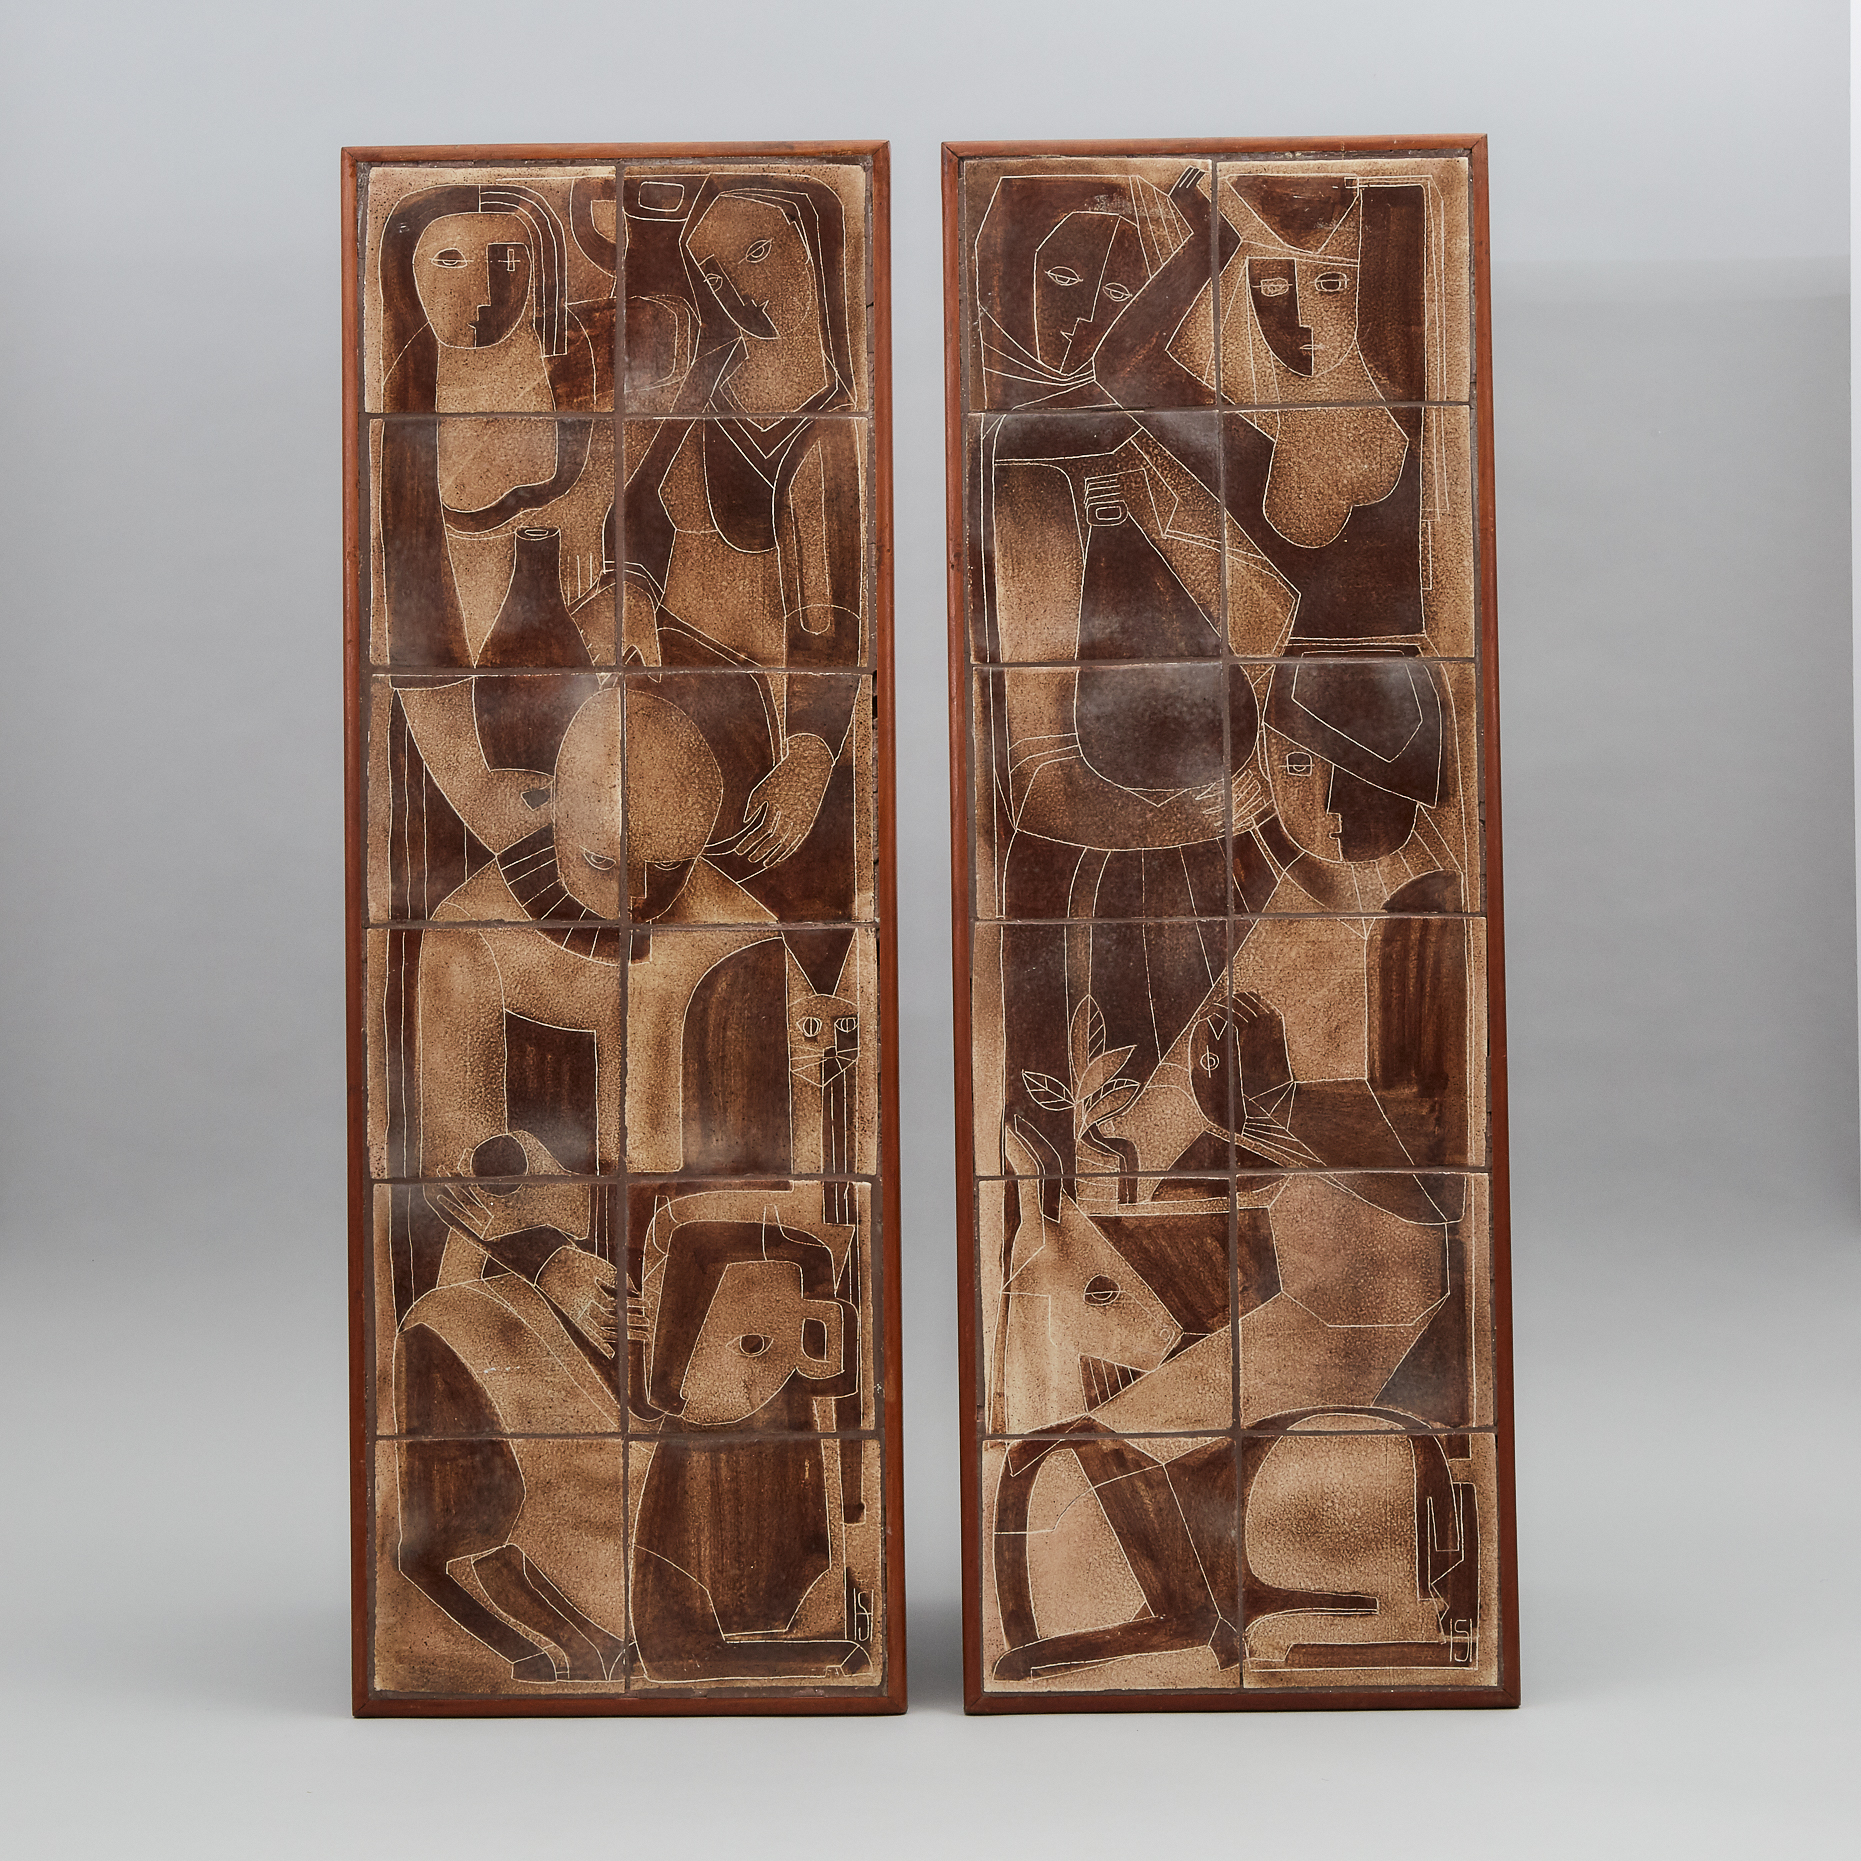 Pair of Brooklin Pottery Rectangular Tile Panels, Theo and Susan Harlander, c.1970